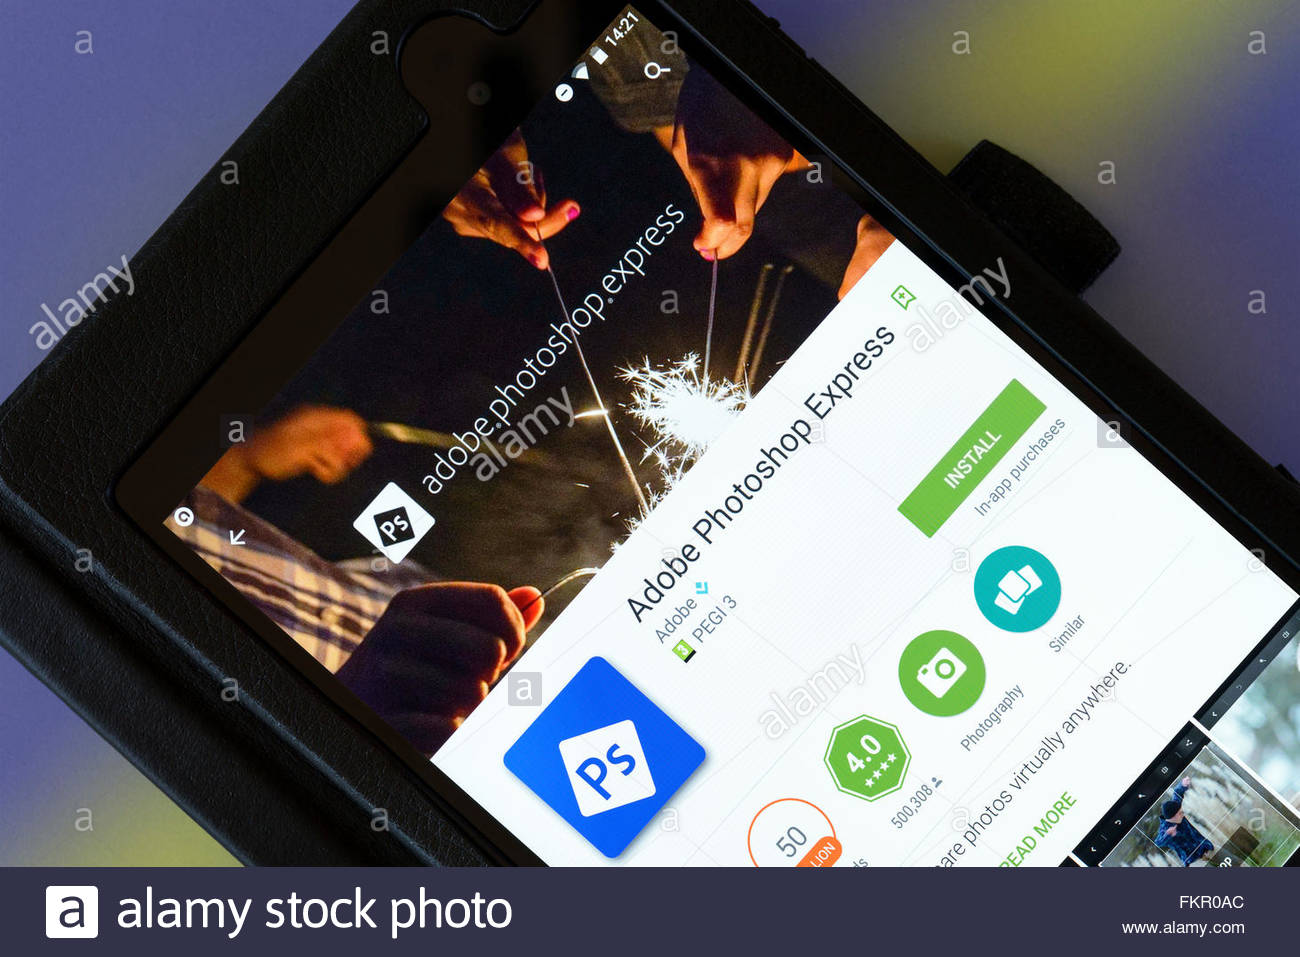 Adobe Photoshop Express app on an android tablet PC, Dorset, England, UK - Stock Image